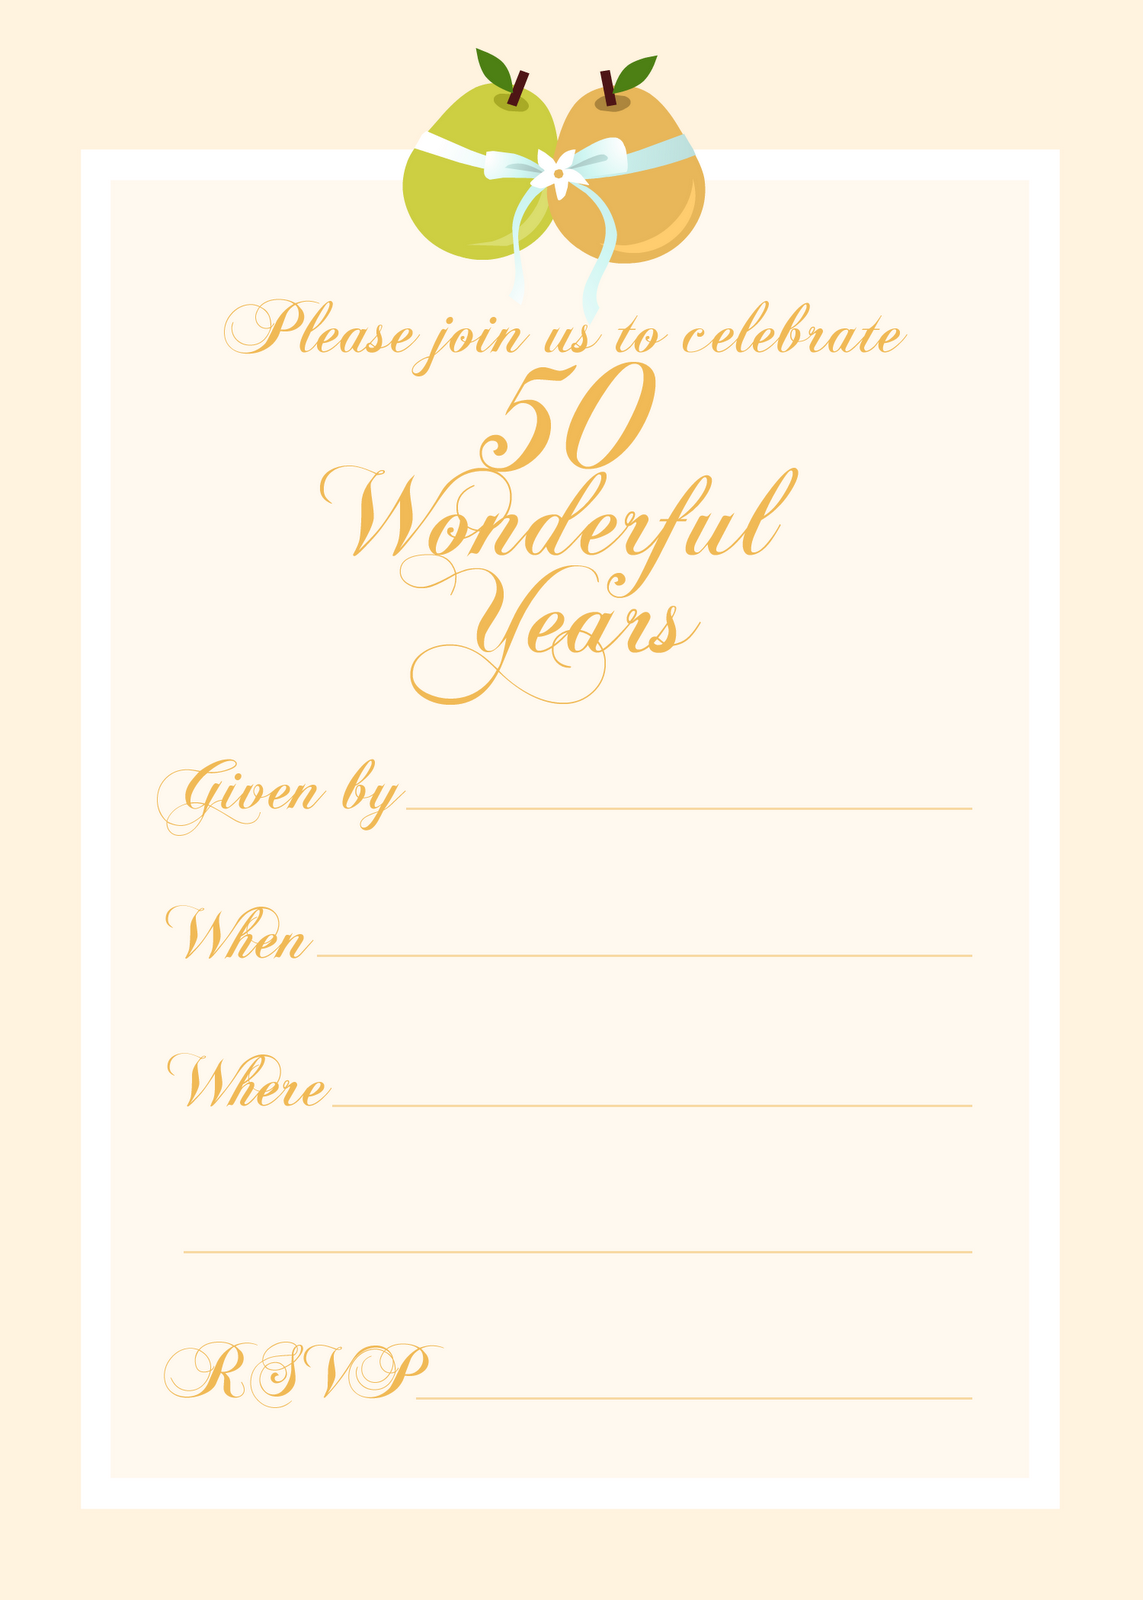 50th Party Invitations Templates free wedding anniversary 50th – 50th Wedding Anniversary Invitation Templates